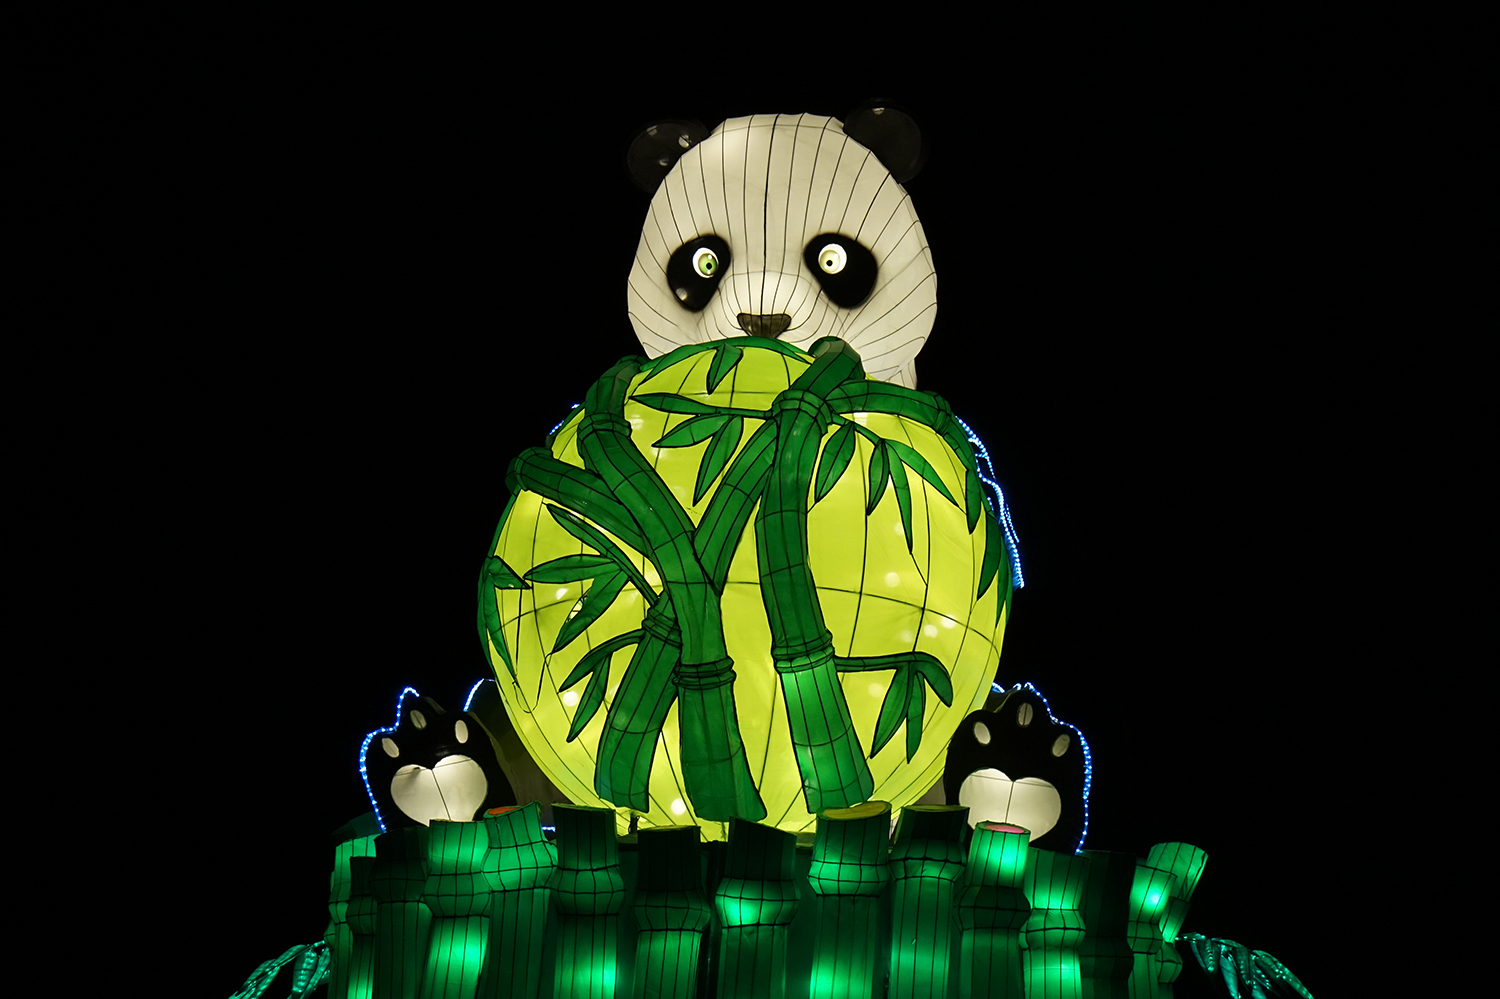 magical_lantern_festival_chiswick_17